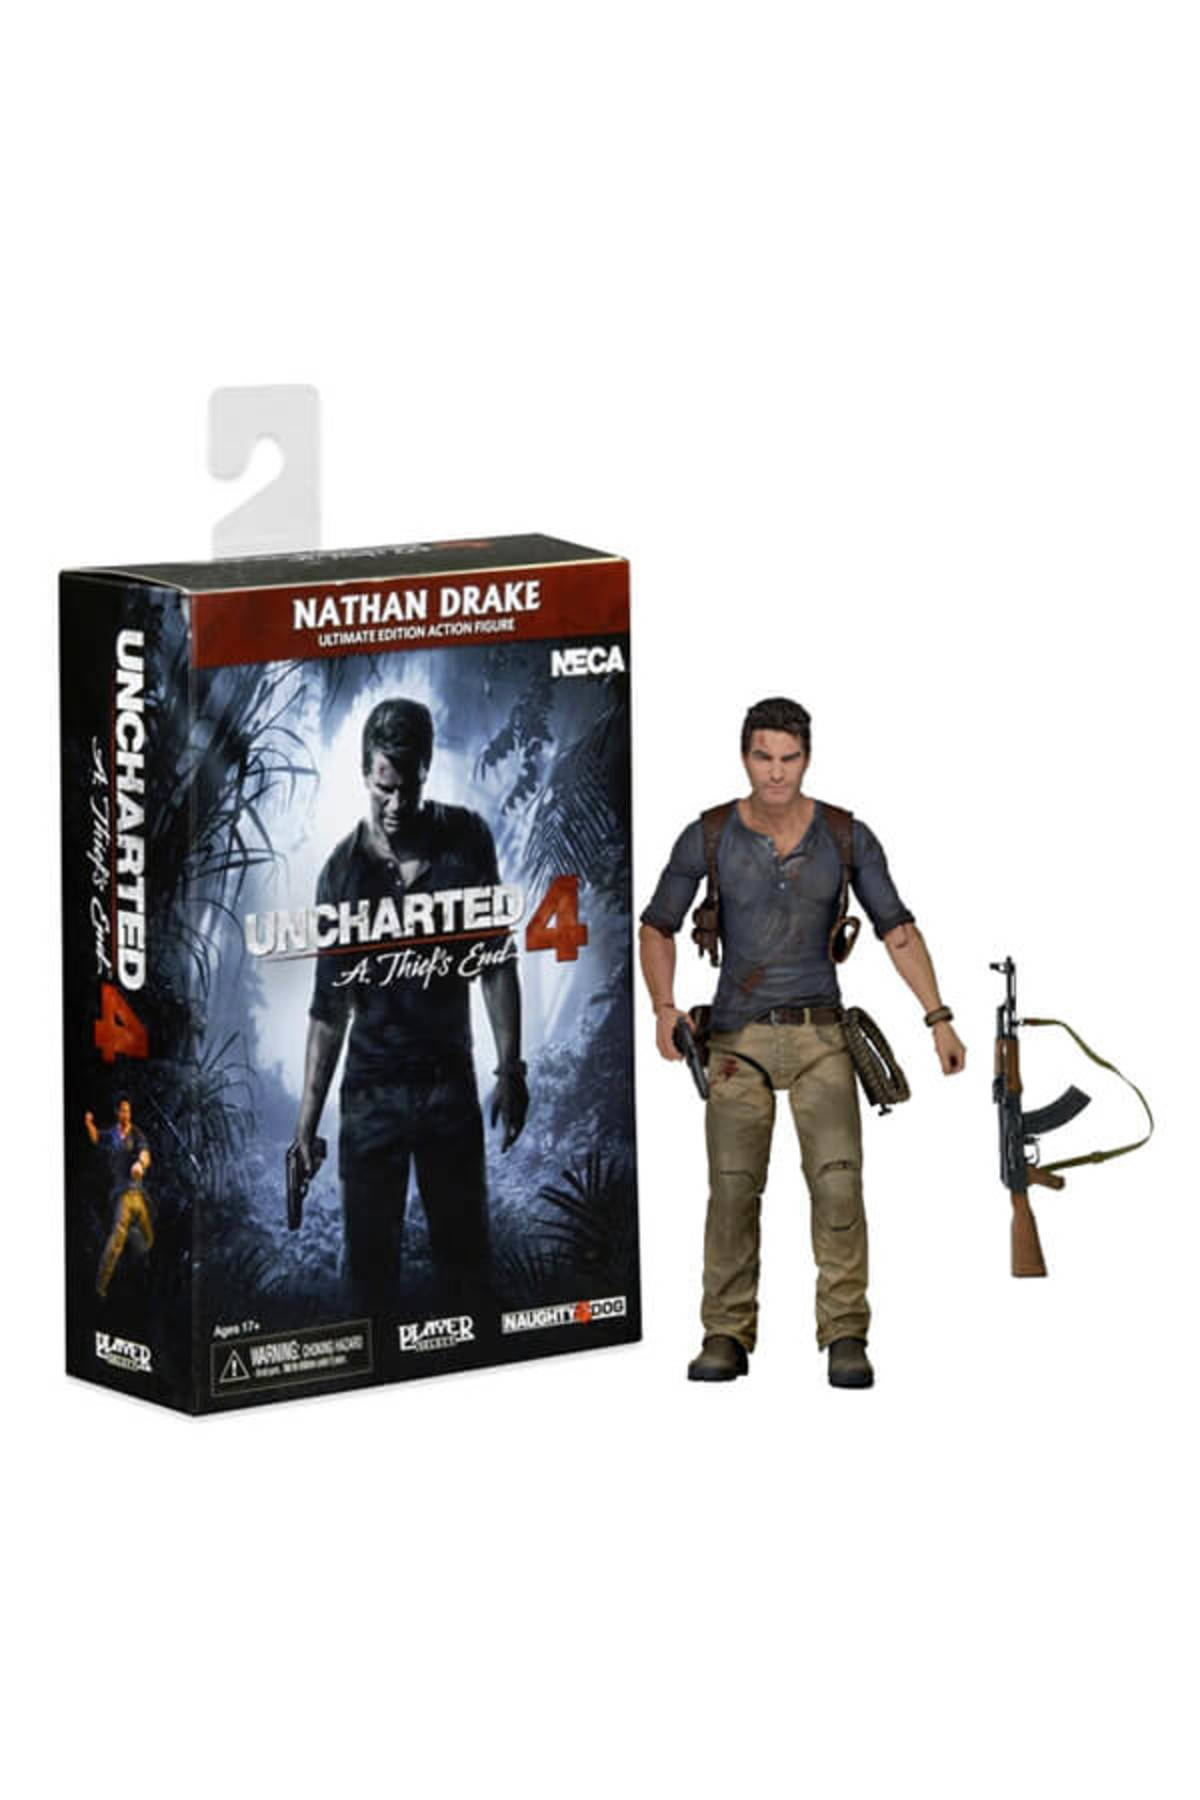 Neca Uncharted 4 Ultimate Nathan Drake 7 Inch Action Figure 2